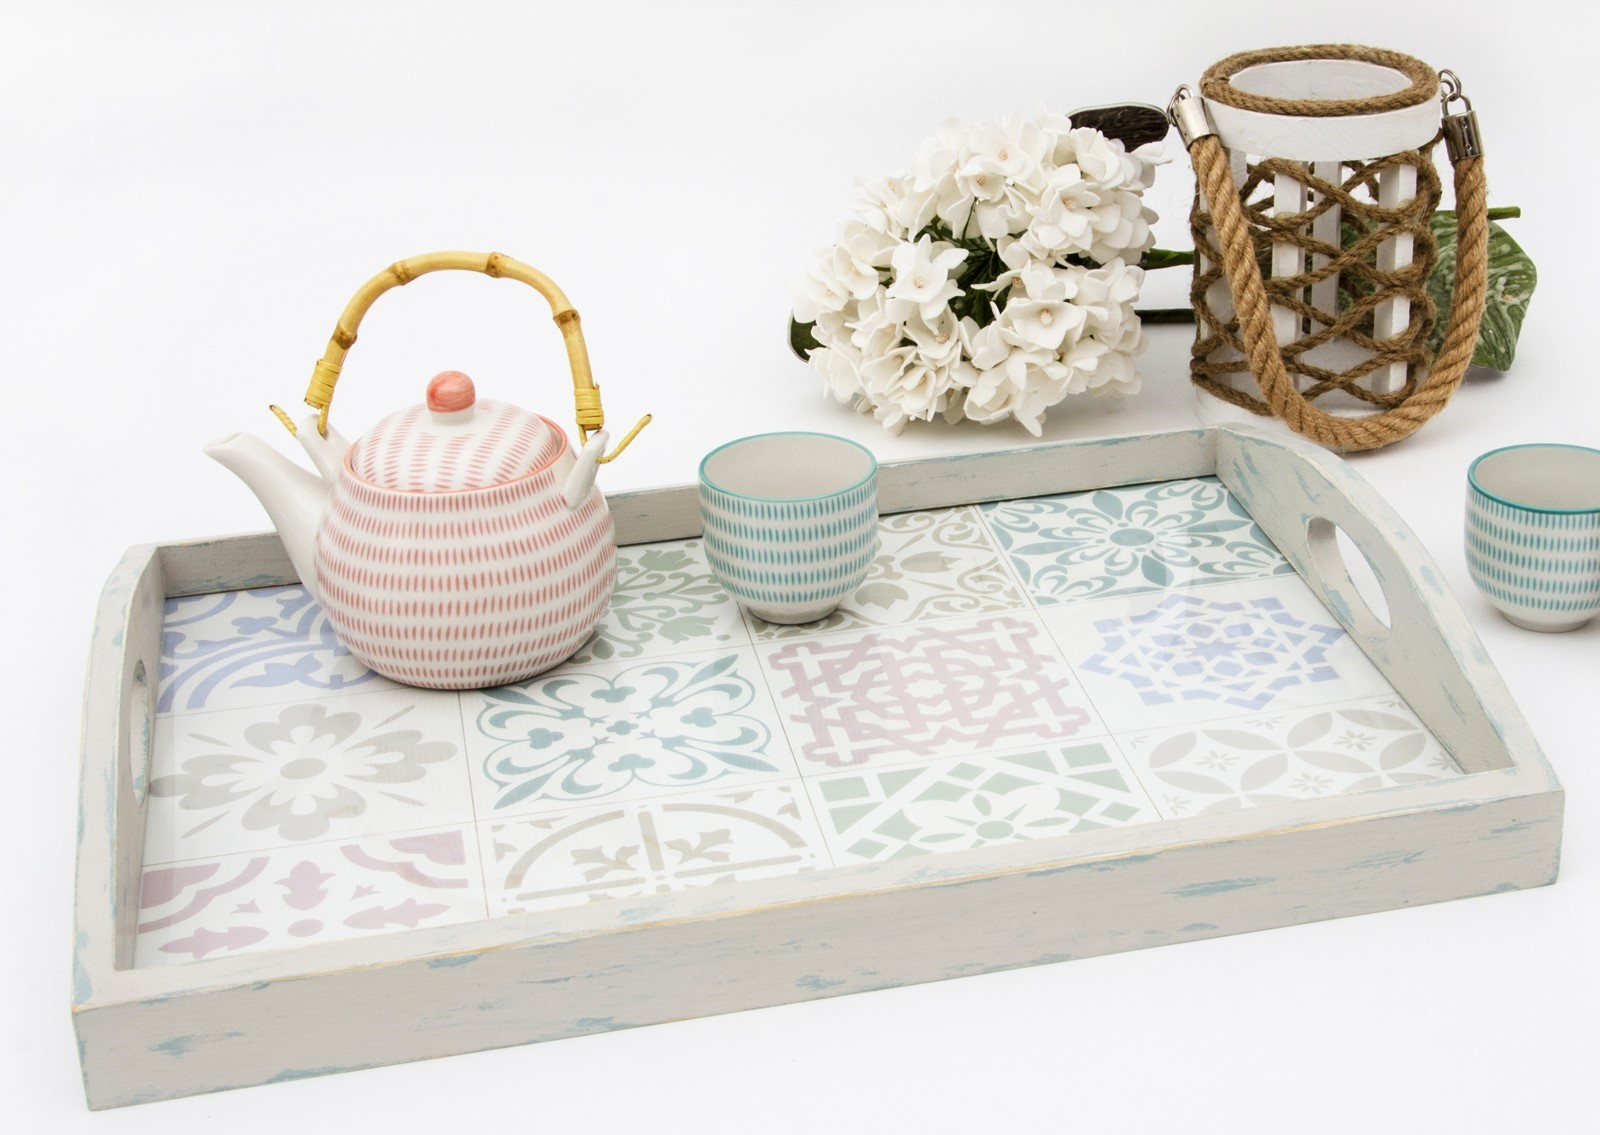 Pastel color tray